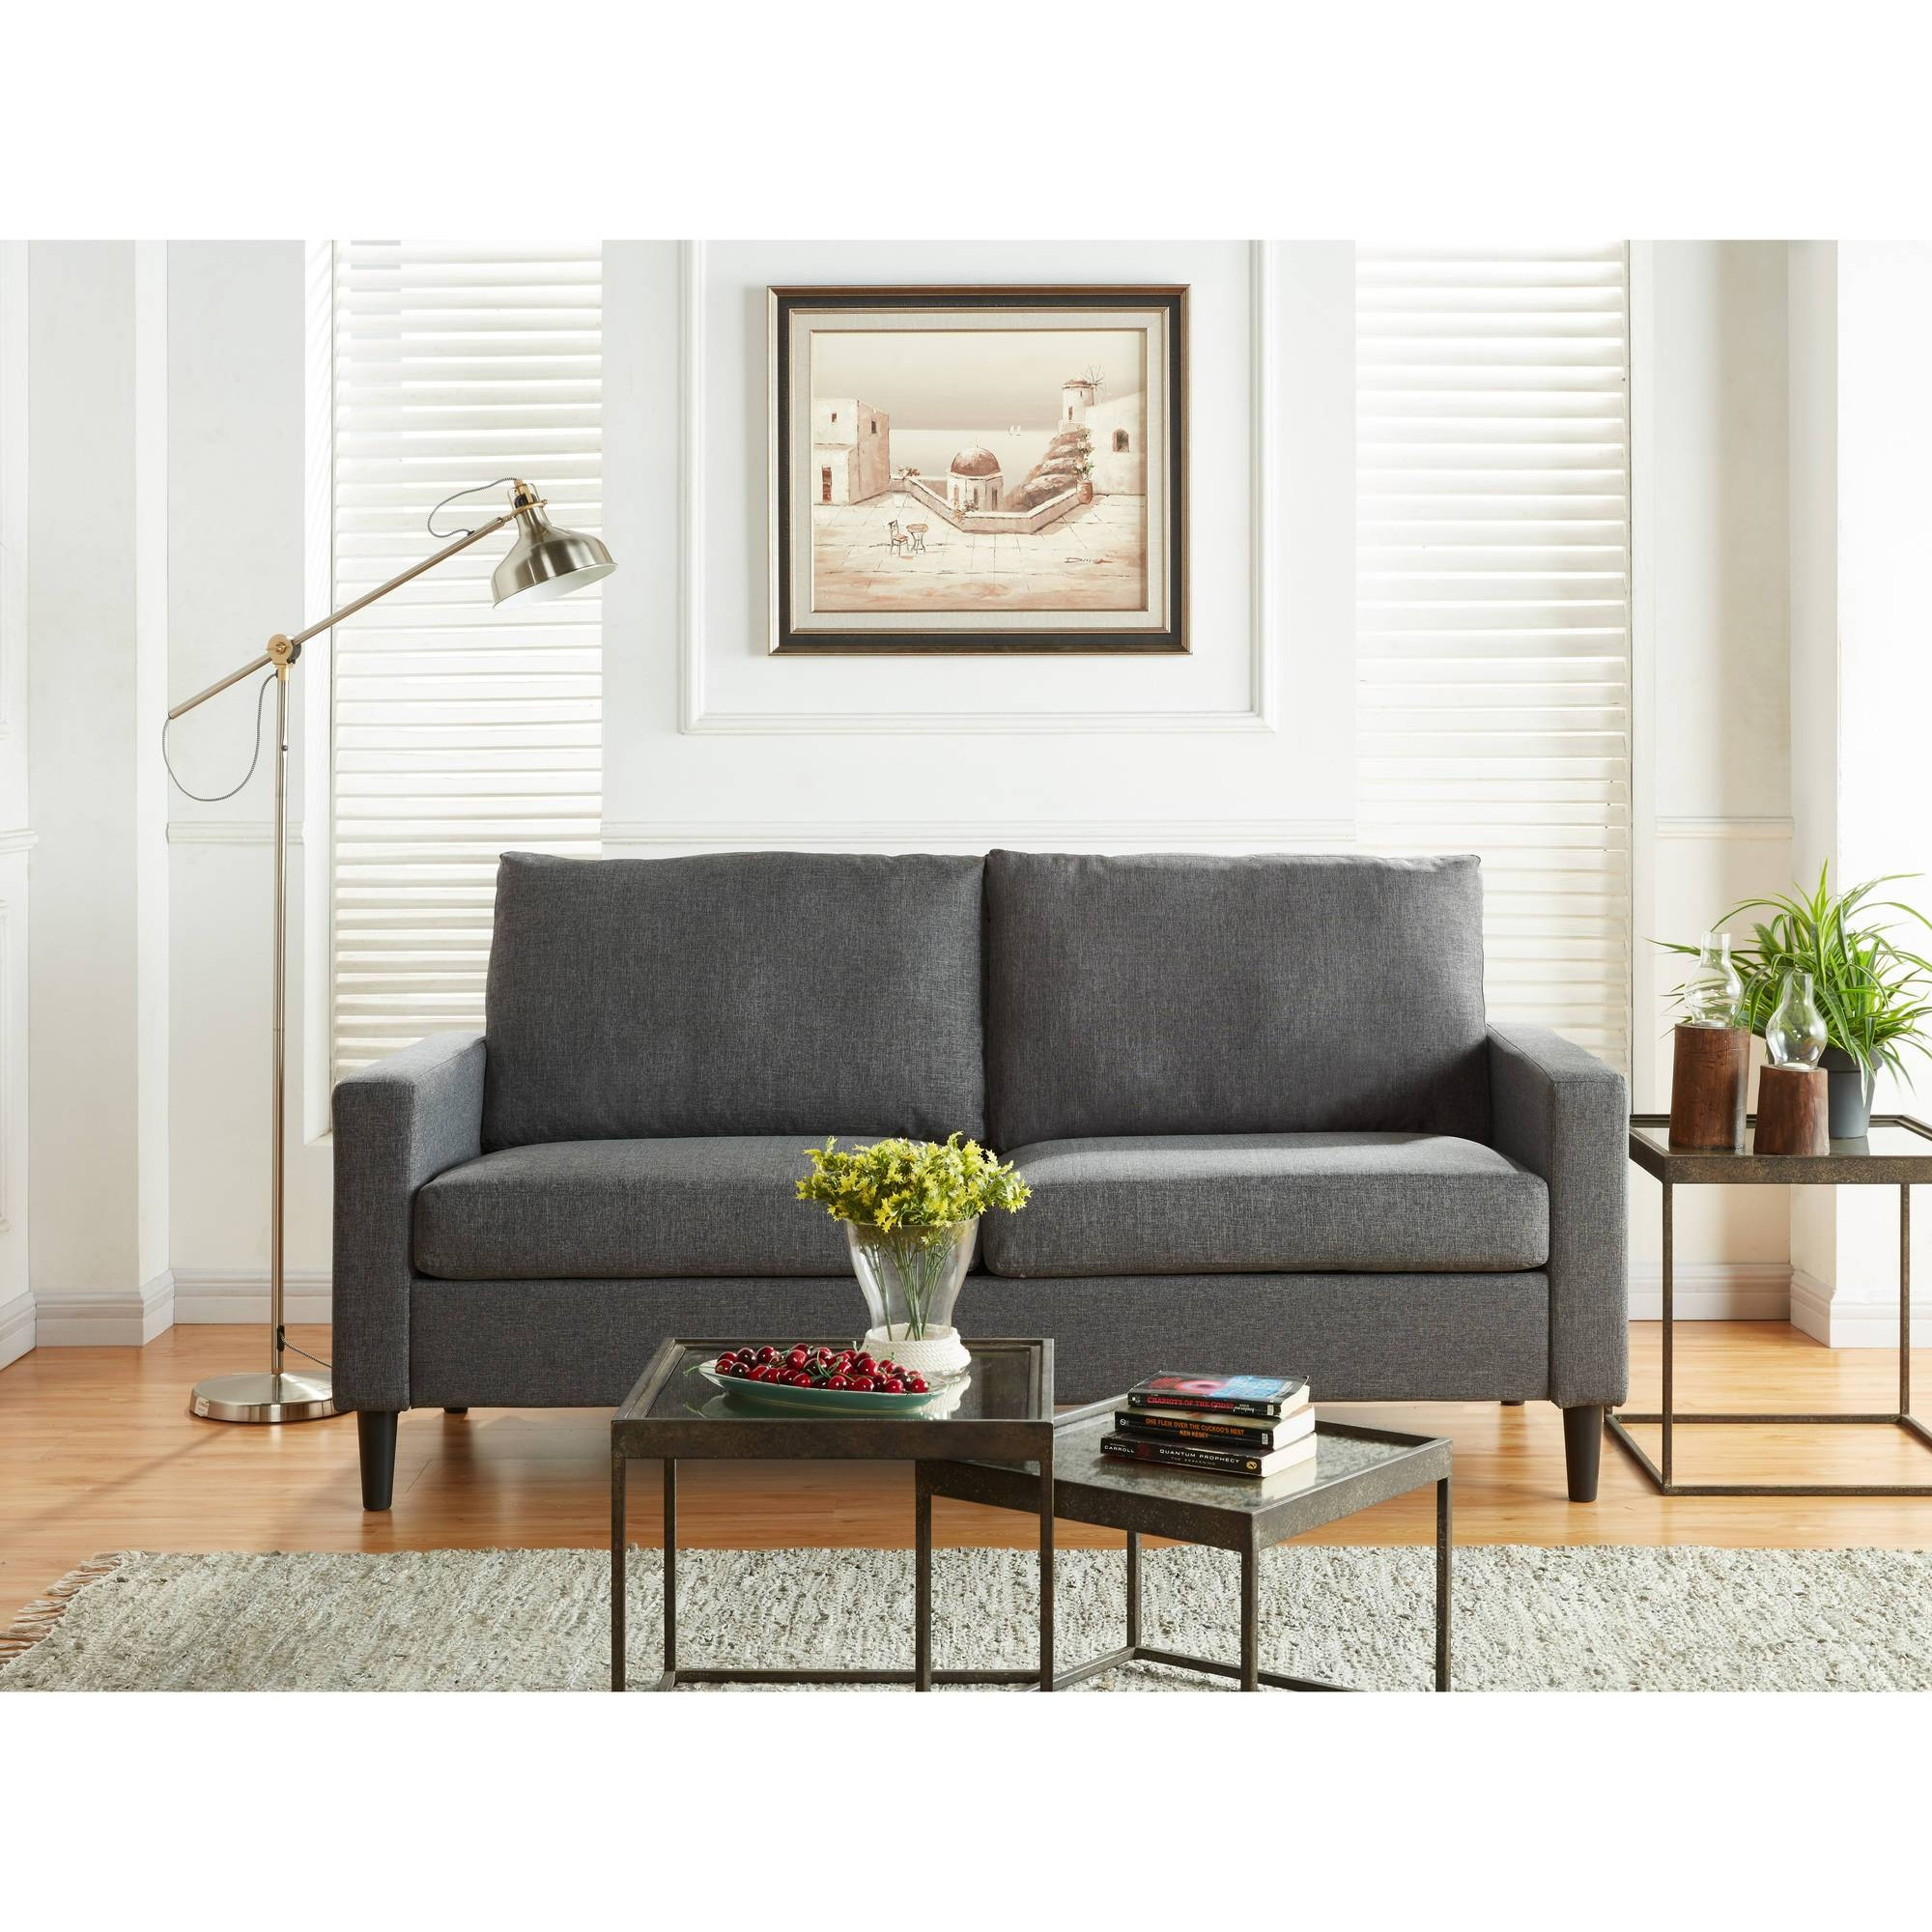 The Most Popular Walmart Sectional Sofas 13 With Additional inside Traditional Sectional Sofas Living Room Furniture (Image 16 of 25)